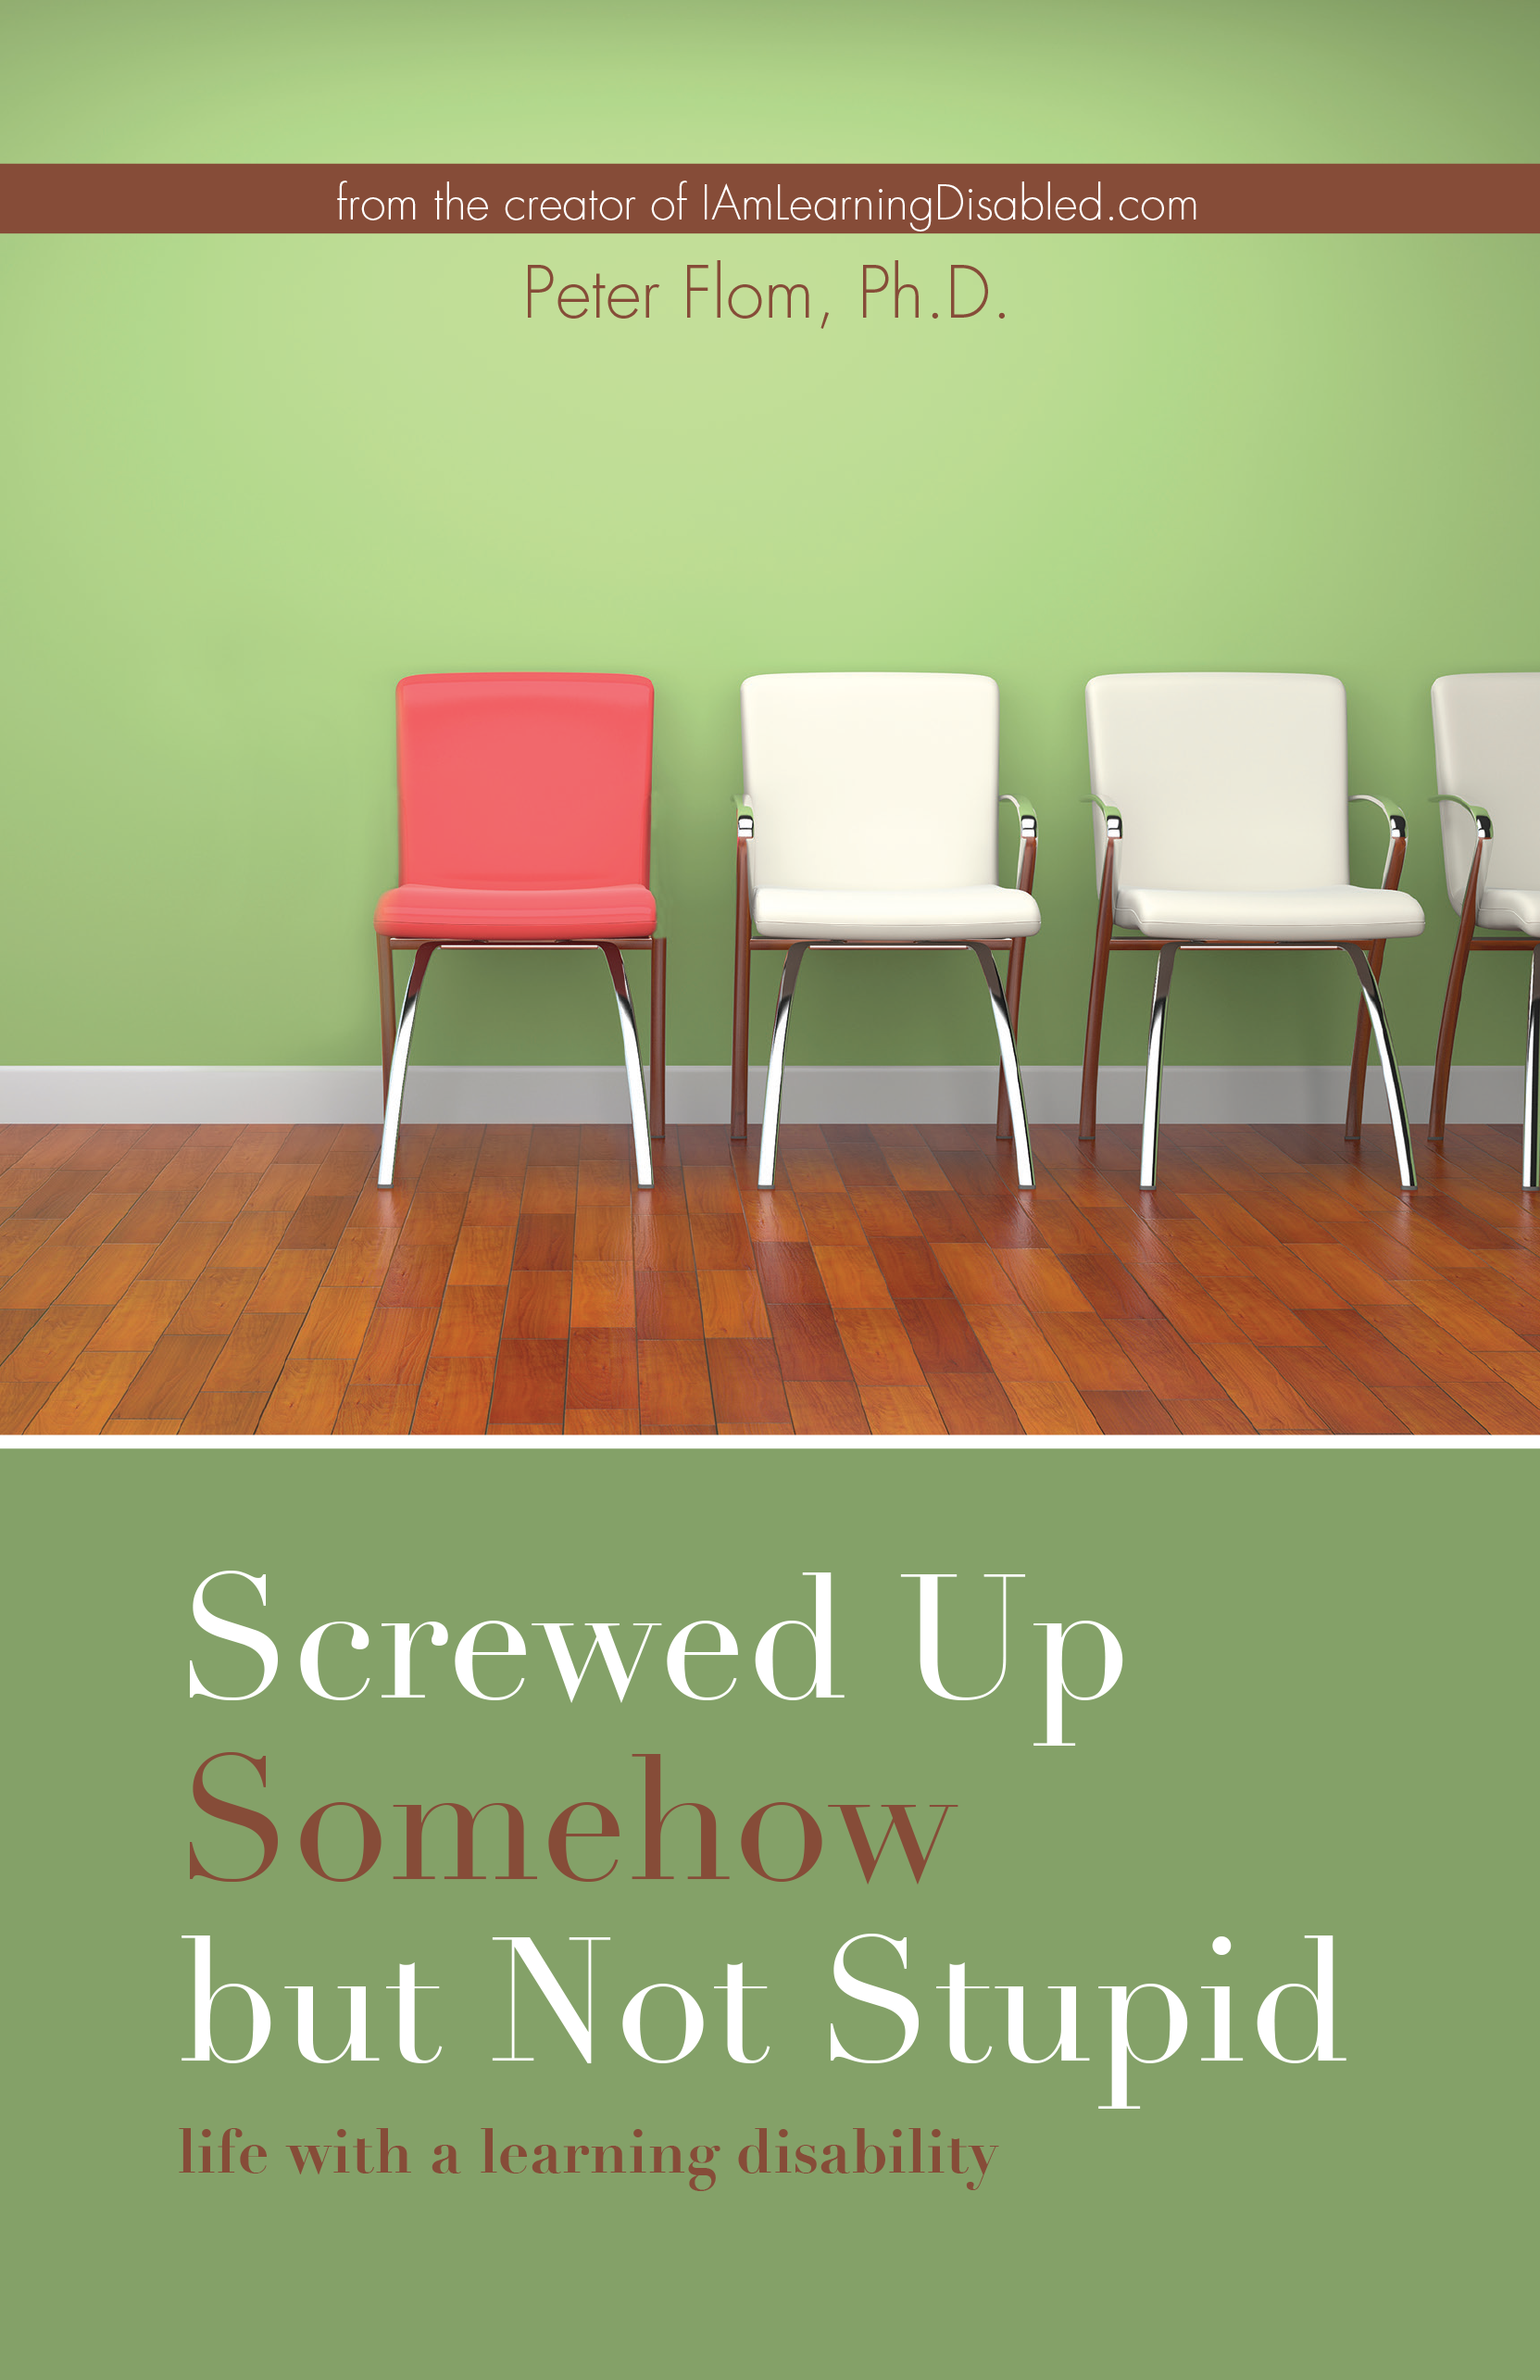 Screwed Up Somehow but Not Stupid by Peter Flom (2015)